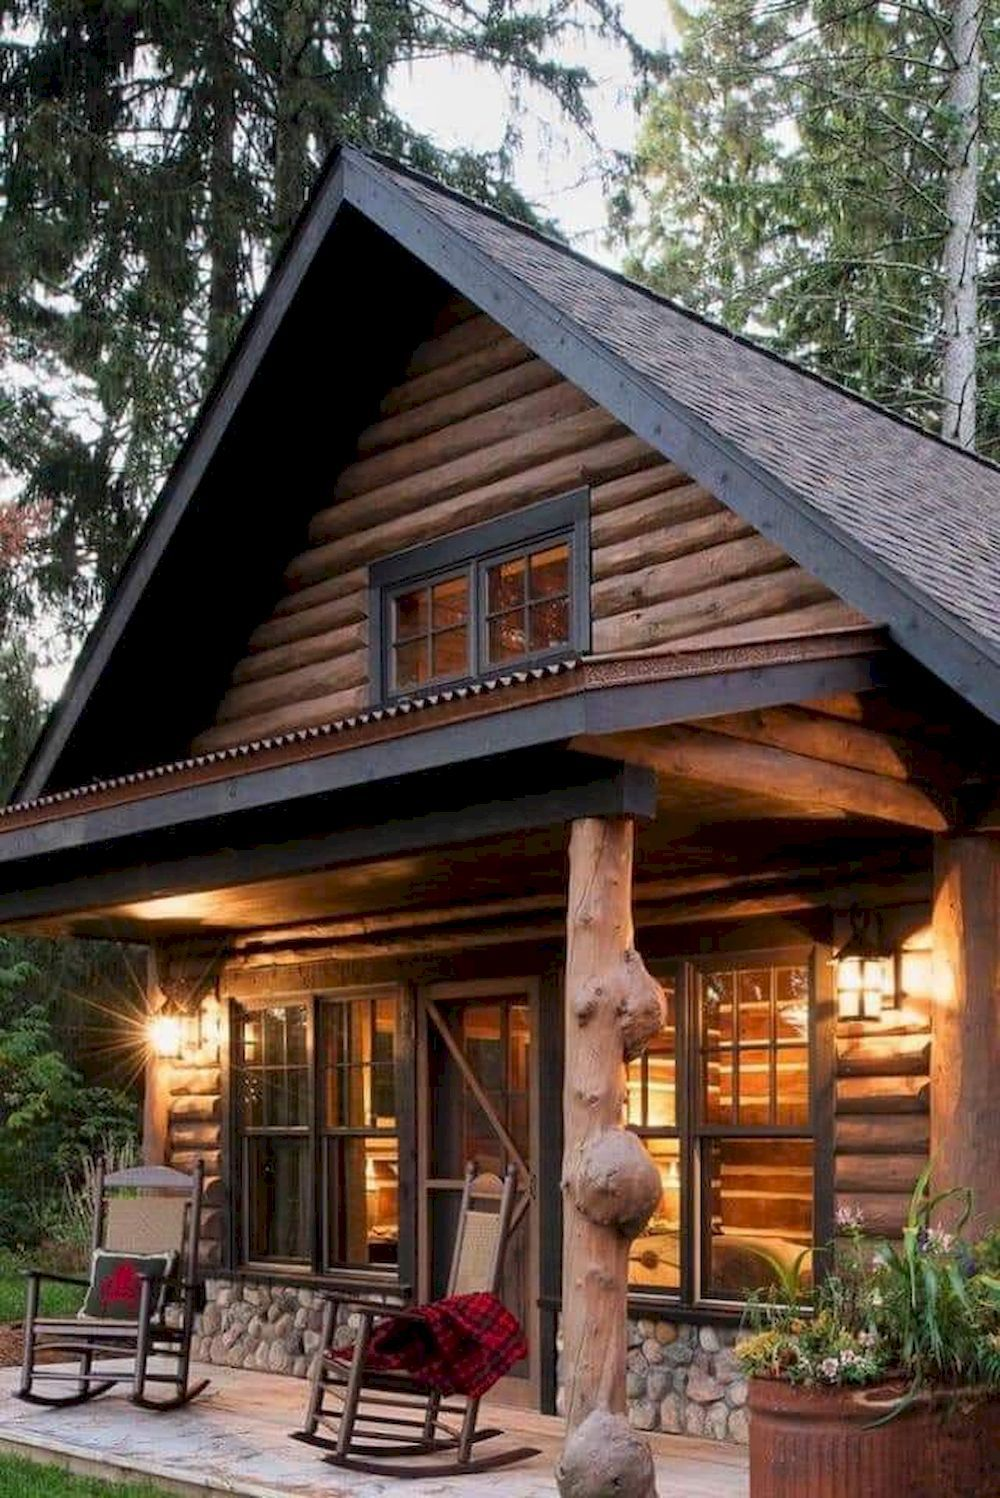 Why The Log Cabins Are The Best In 2020 Rustic House Log Homes Rustic Cabin